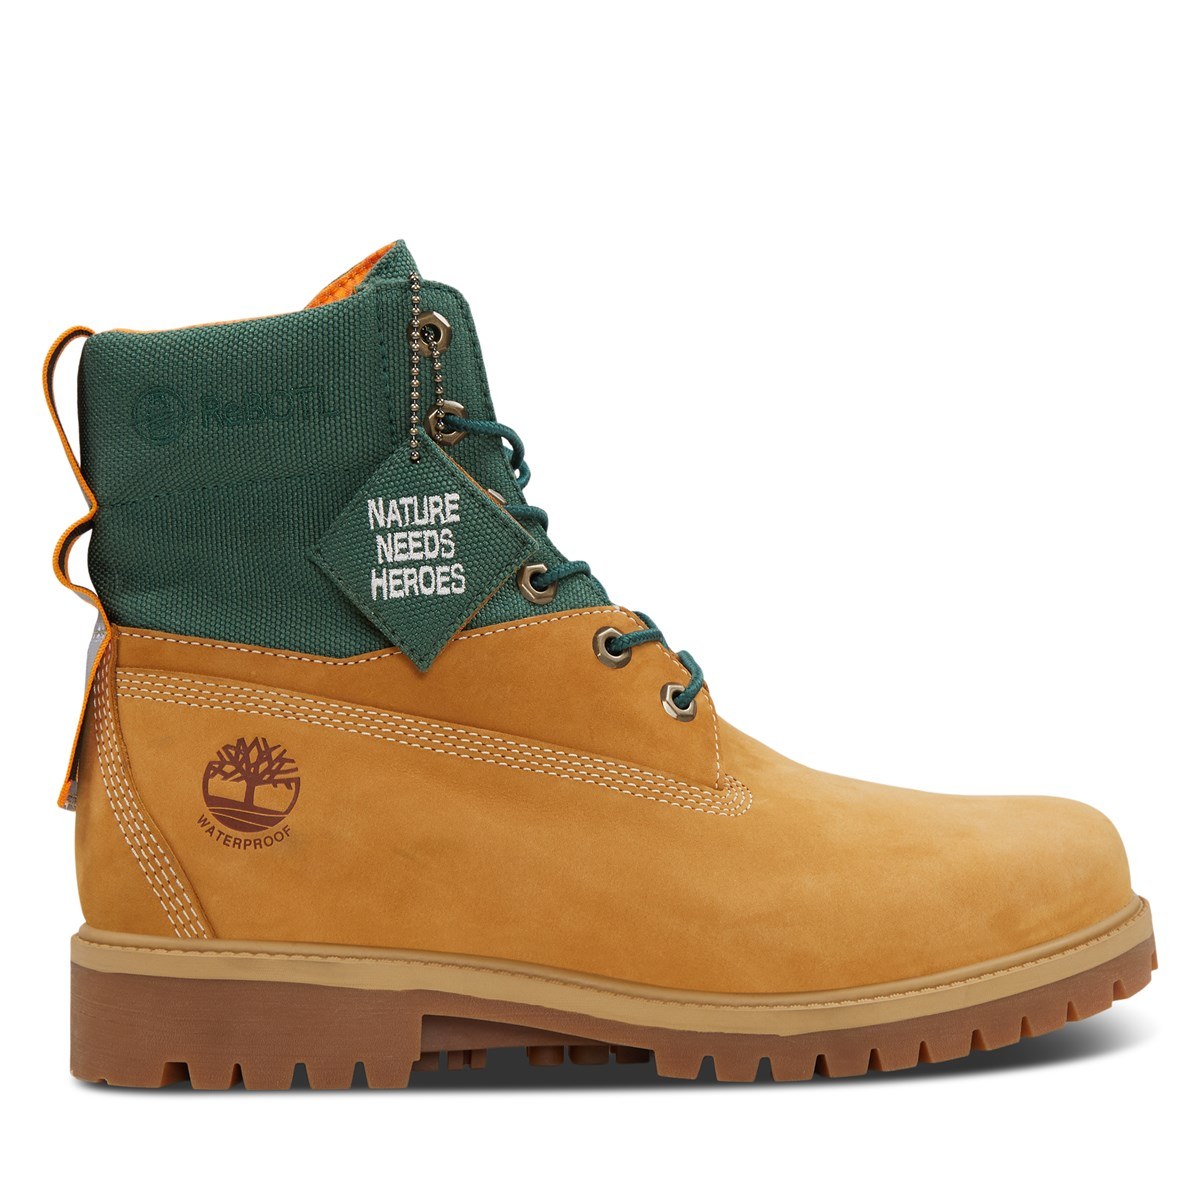 Men's 6 Premium REBOTL Waterproof Boots in Wheat